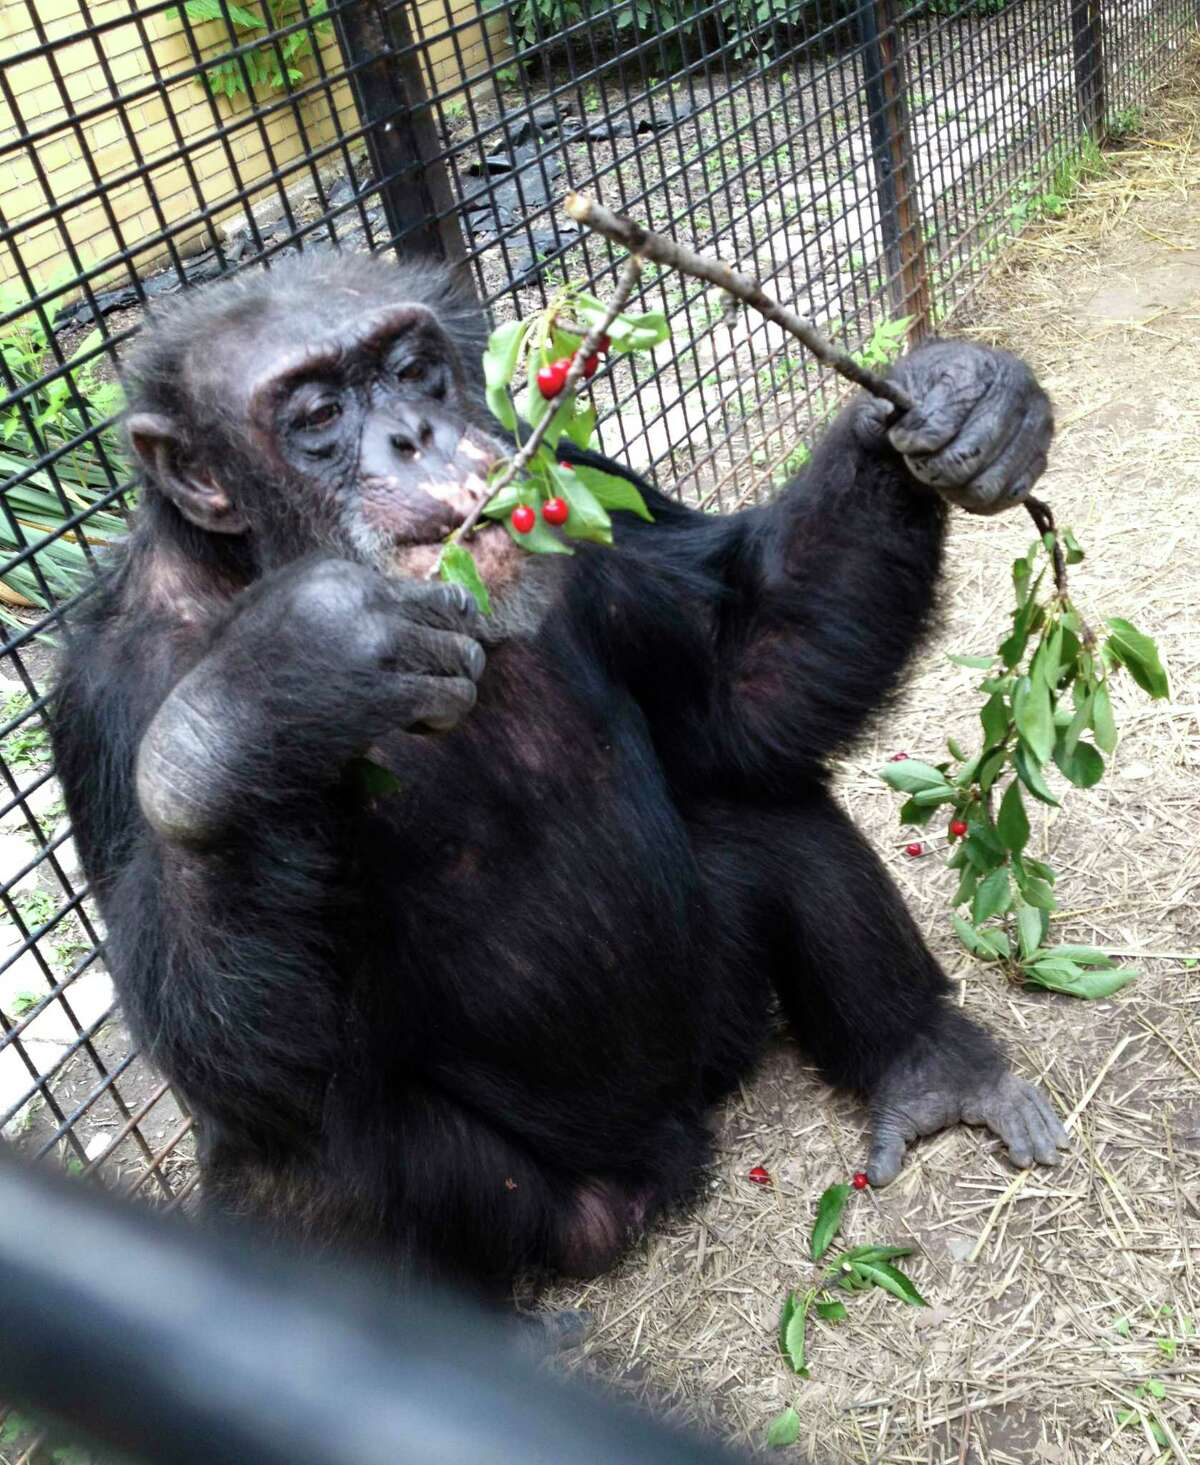 In this July 2013 photo provided by the Primate Sanctuary, the chimpanzee Kiko eats wild cherries at the nonprofit Primate Sanctuary in Niagara Falls, N.Y. Kiko's keeper Carmen Presti, and his wife rescued the deaf chimp 23 years ago from a life of performing at state fairs and in the television movie